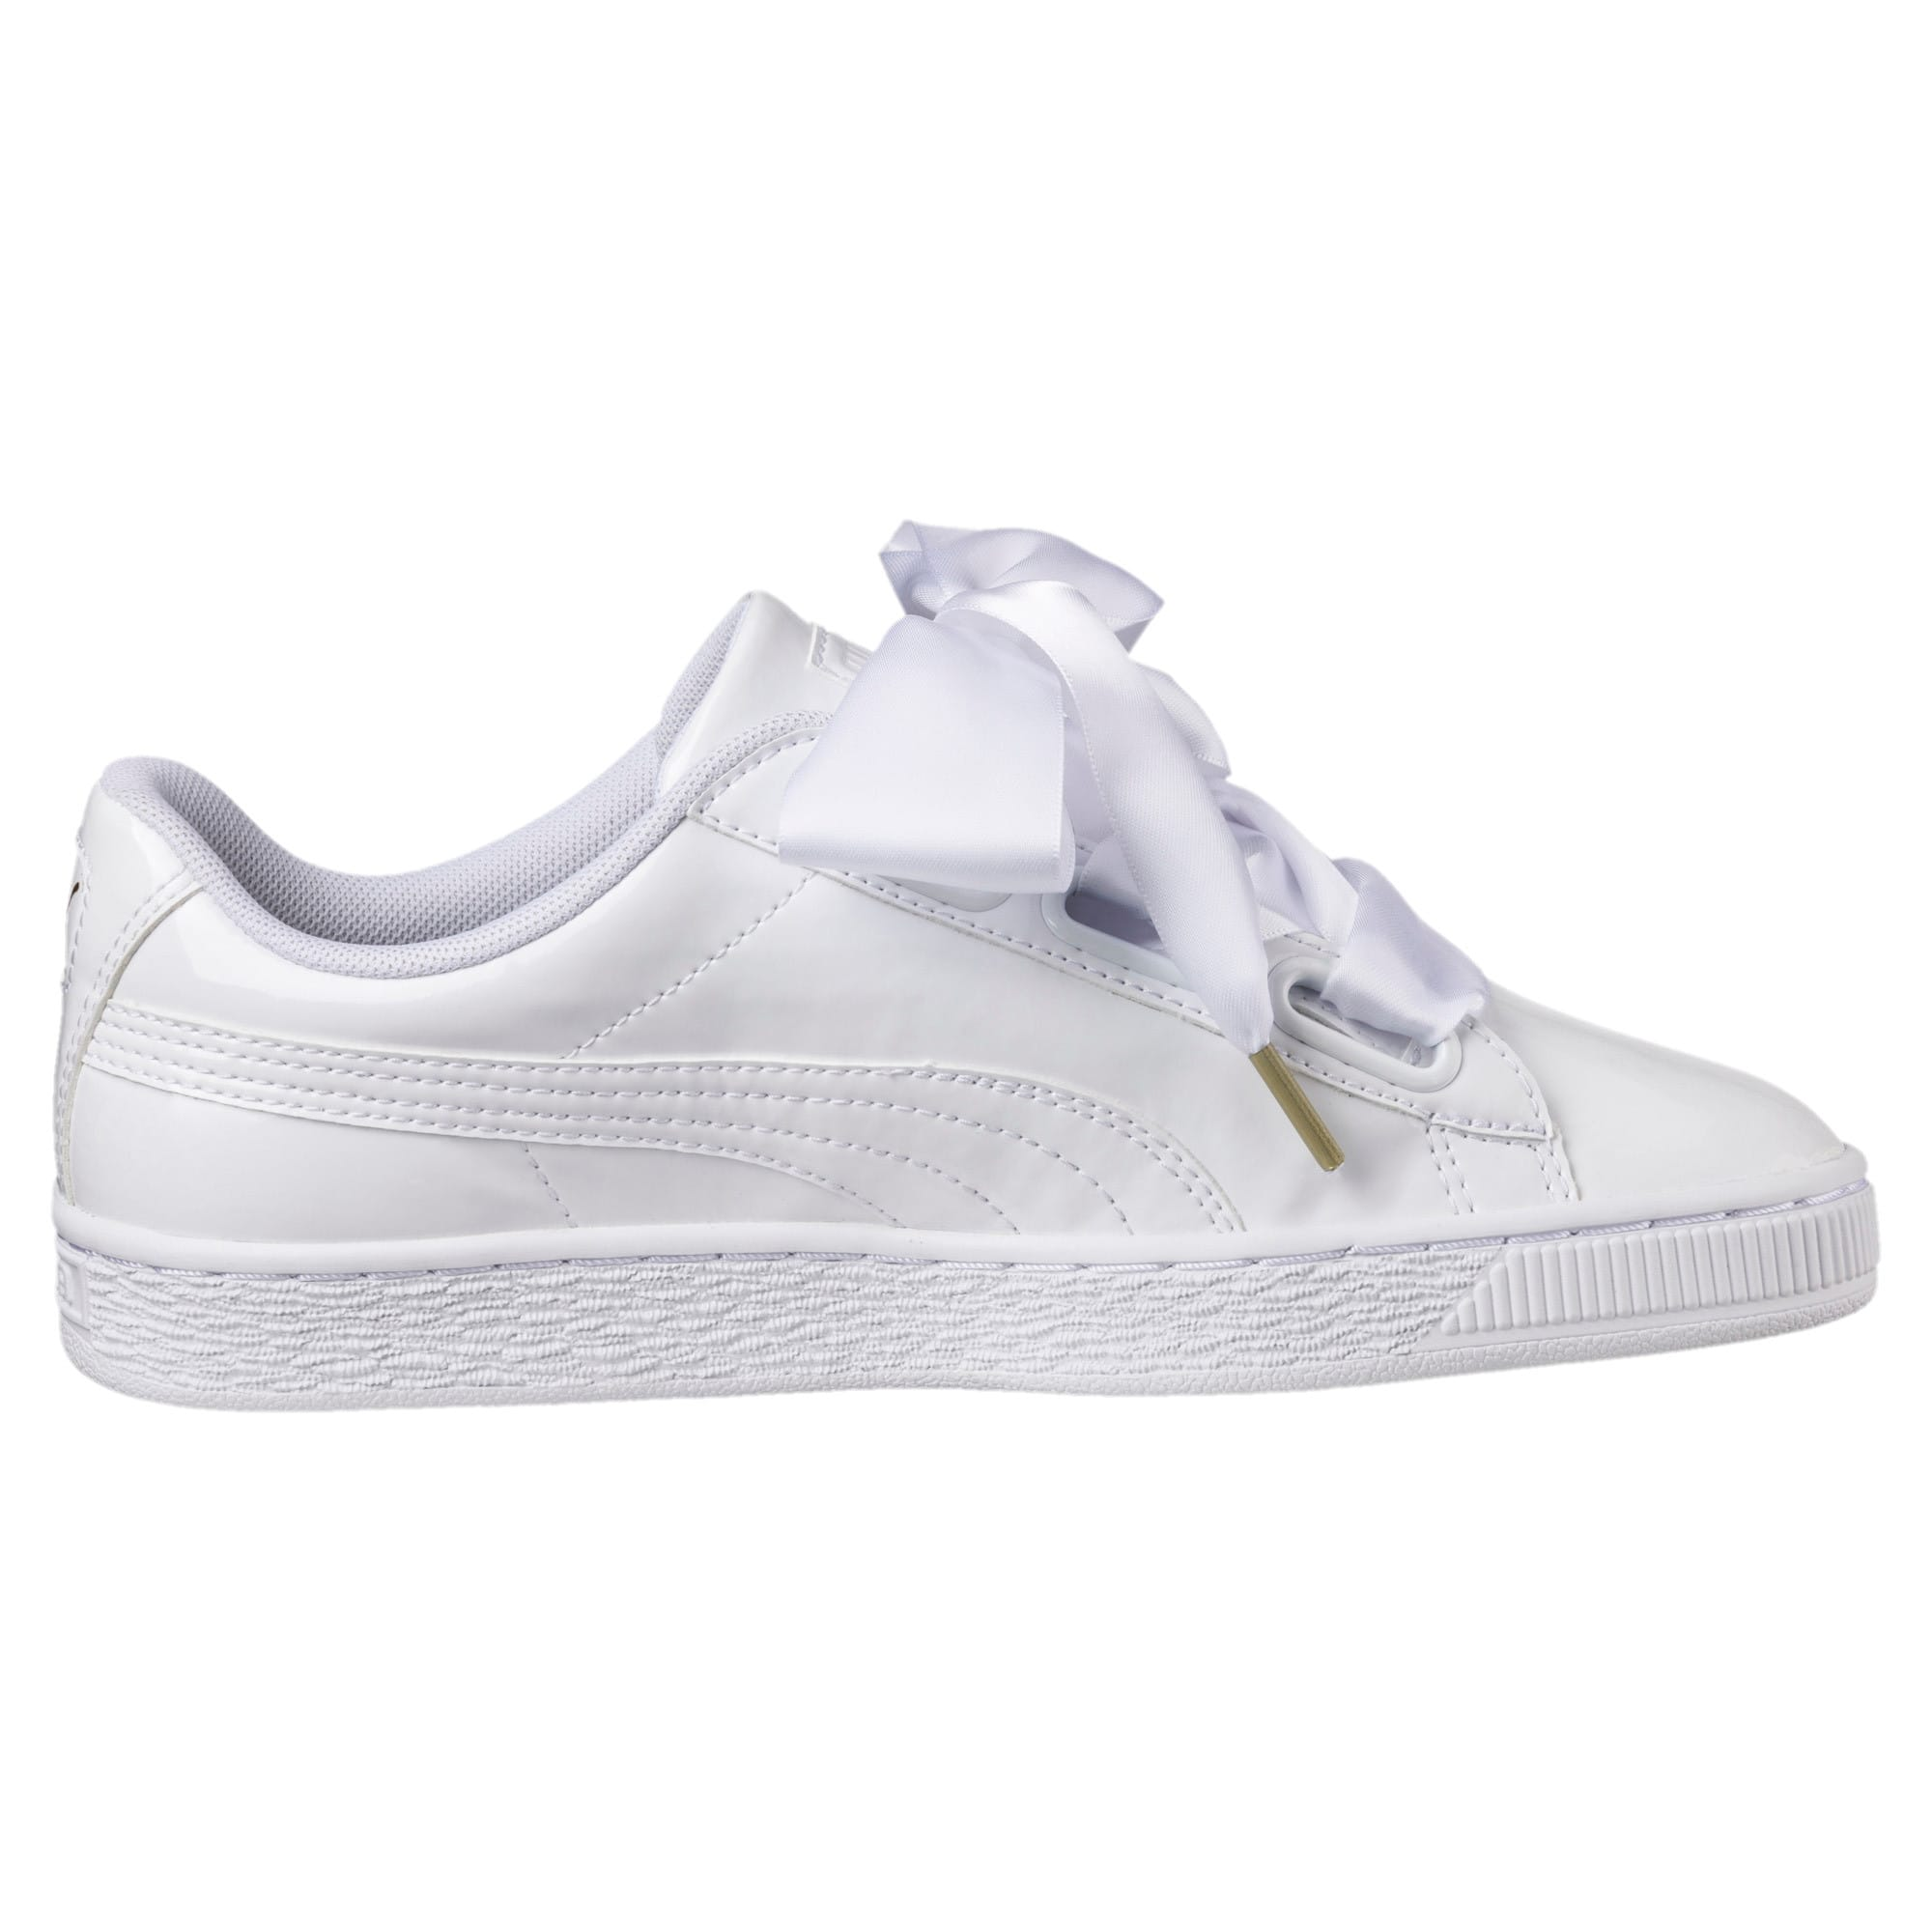 Thumbnail 4 of Basket Heart Patent Women's Trainers, Puma White-Puma White, medium